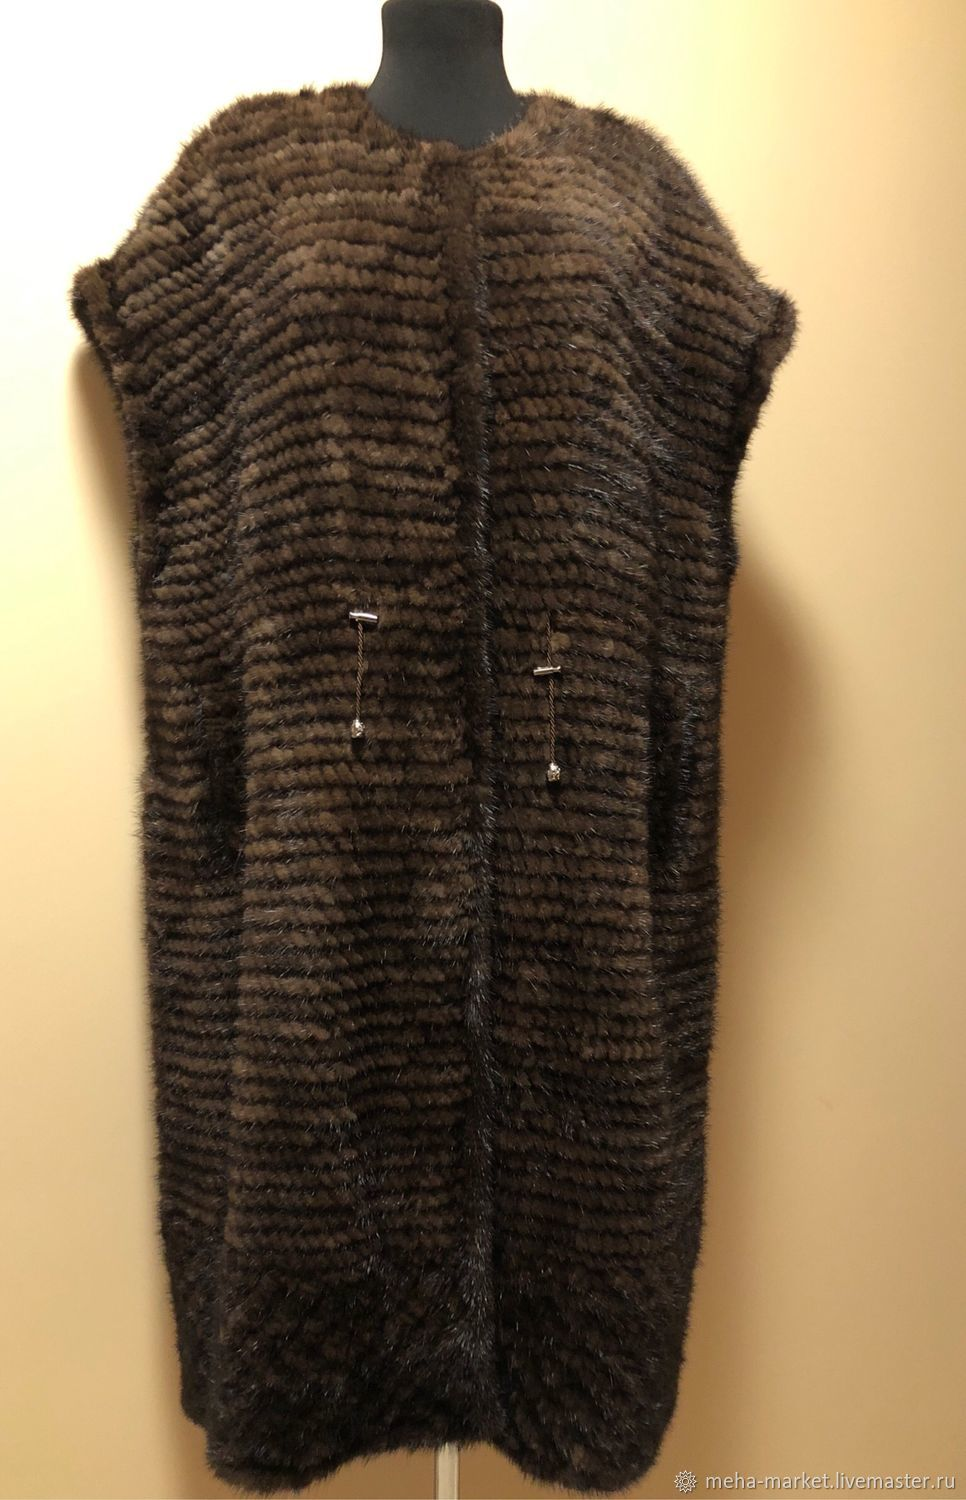 Vest made of knitted mink 'Chocolate' 110 cm. length, Vests, Moscow,  Фото №1